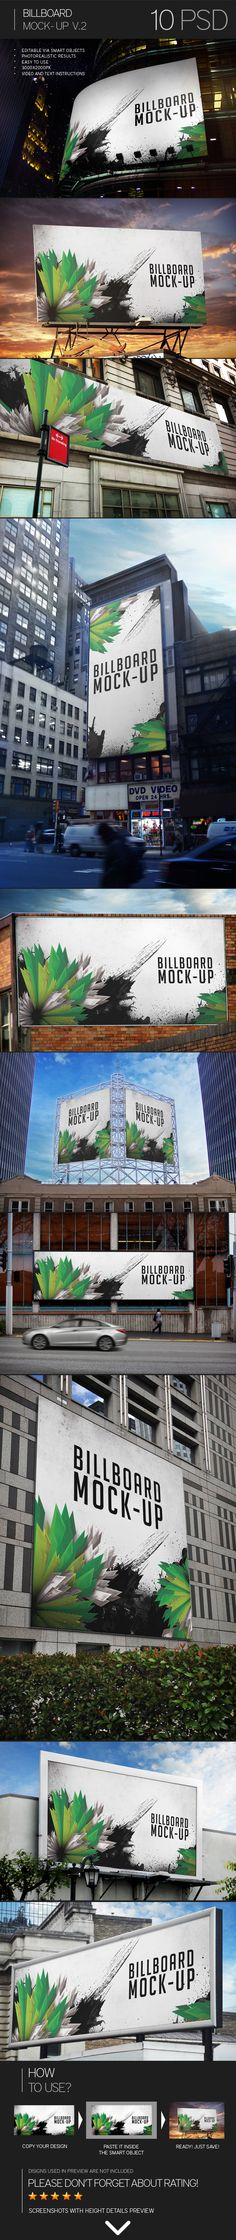 Billboard Mock-Up Vol.2 by Eugene Smith, via Behance